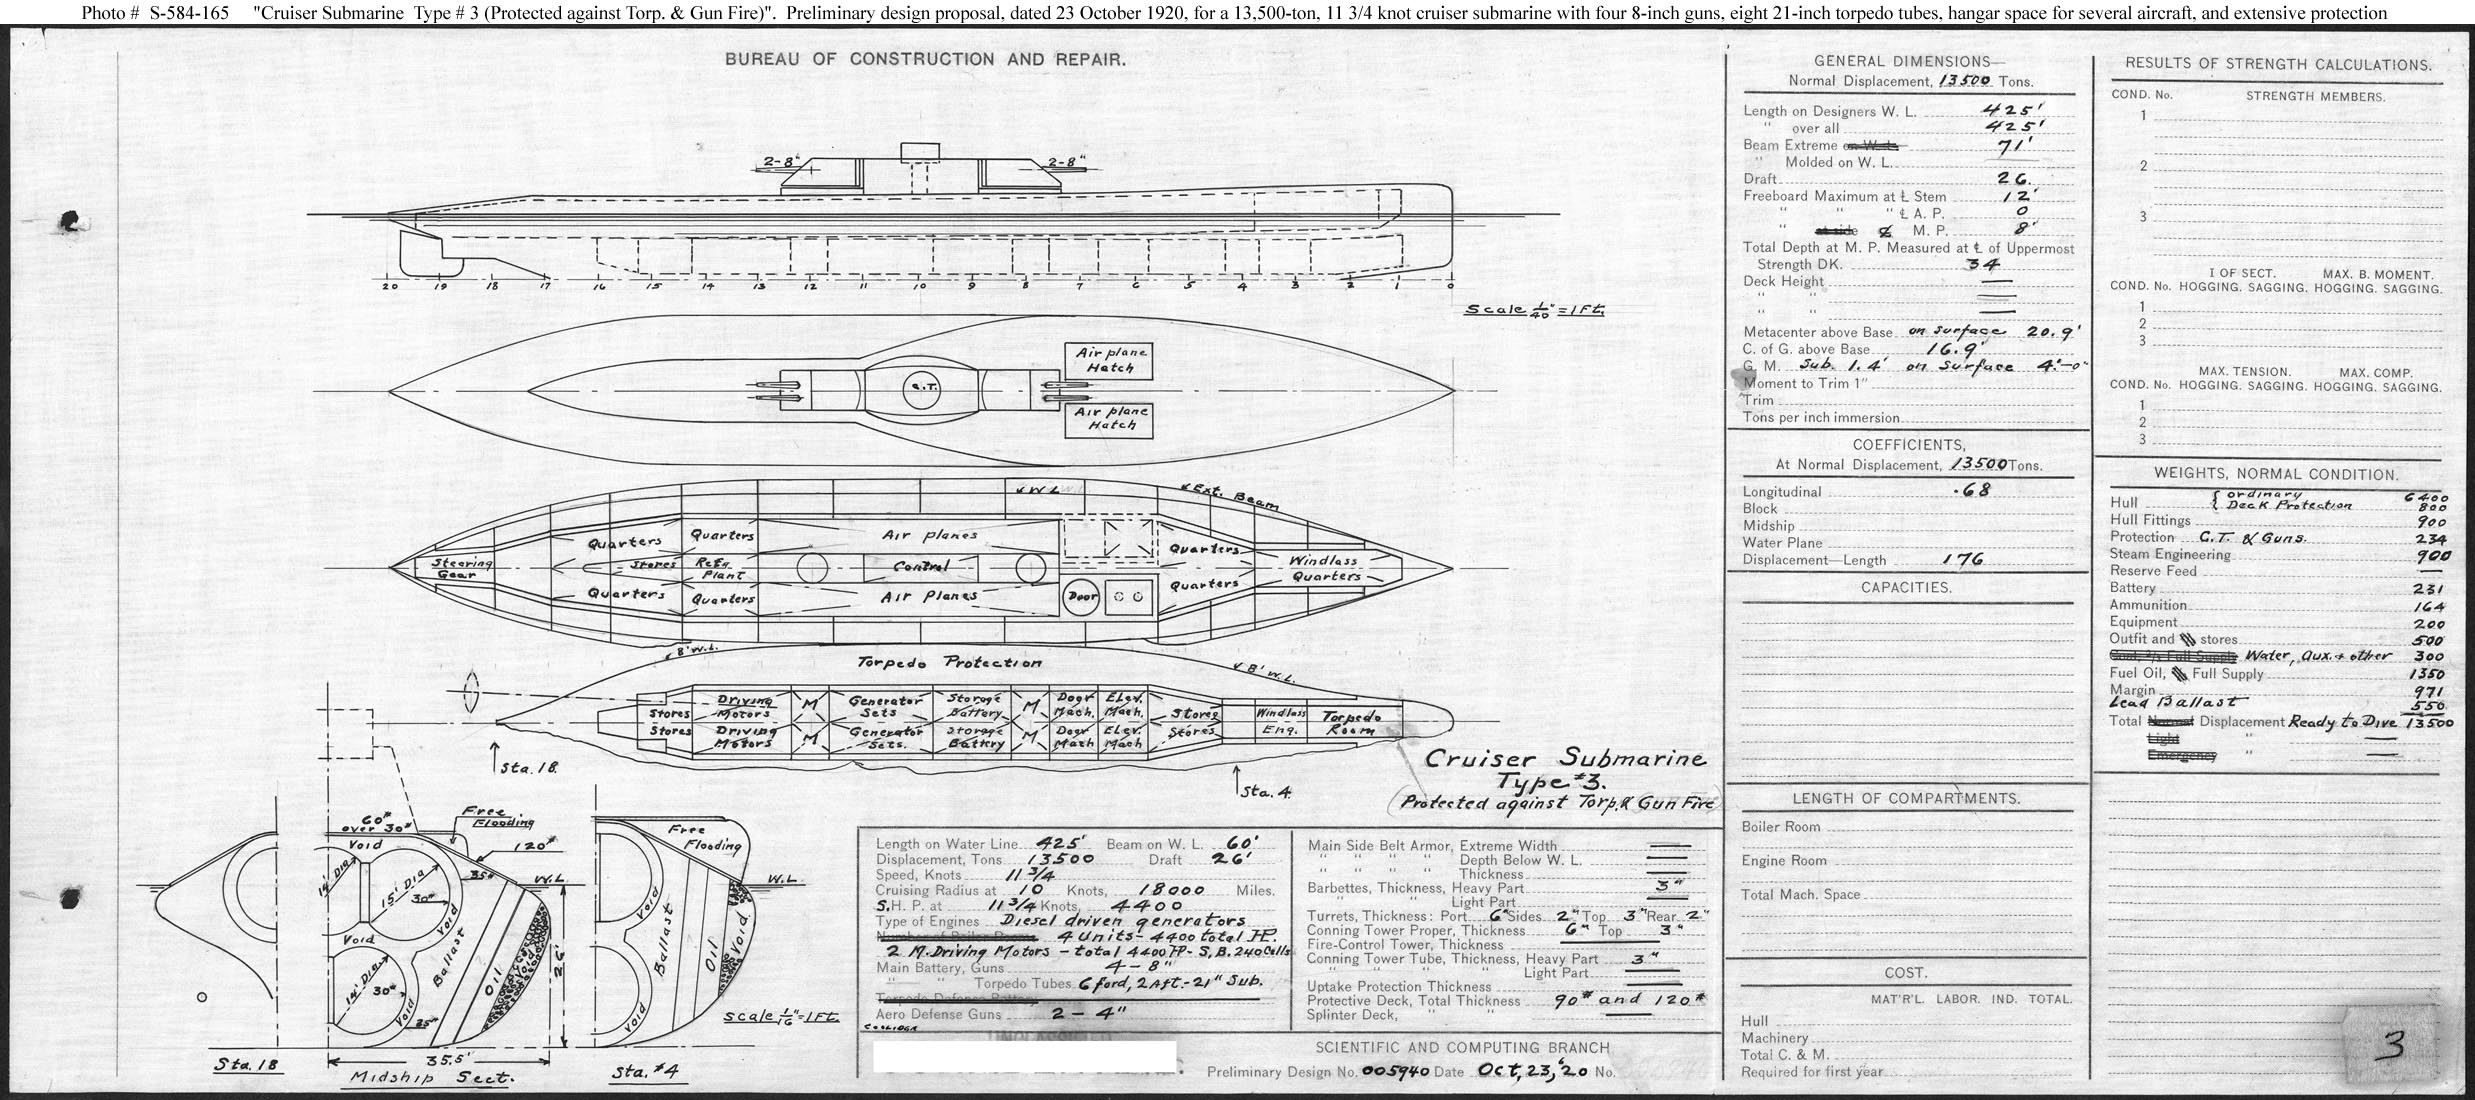 submarine secrets of the cold war On february 20, 1986, six senior naval officers came to the cabinet room in canberra to brief prime minister bob hawke on australias secret cold war submarine operations in asia.